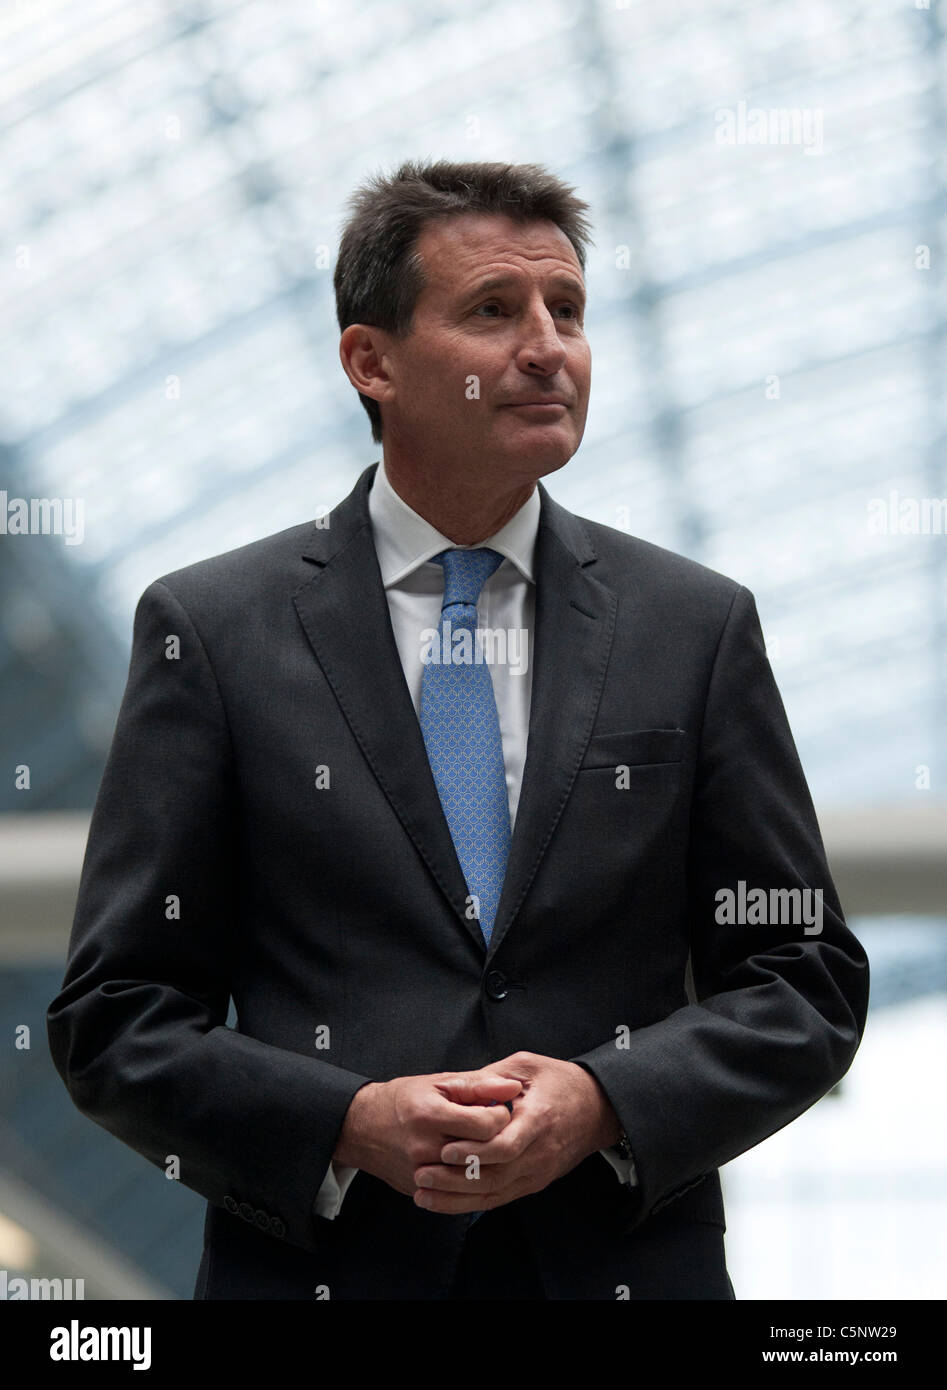 Lord Sebastian Coe  at an Olympic Ceremony in London. - Stock Image